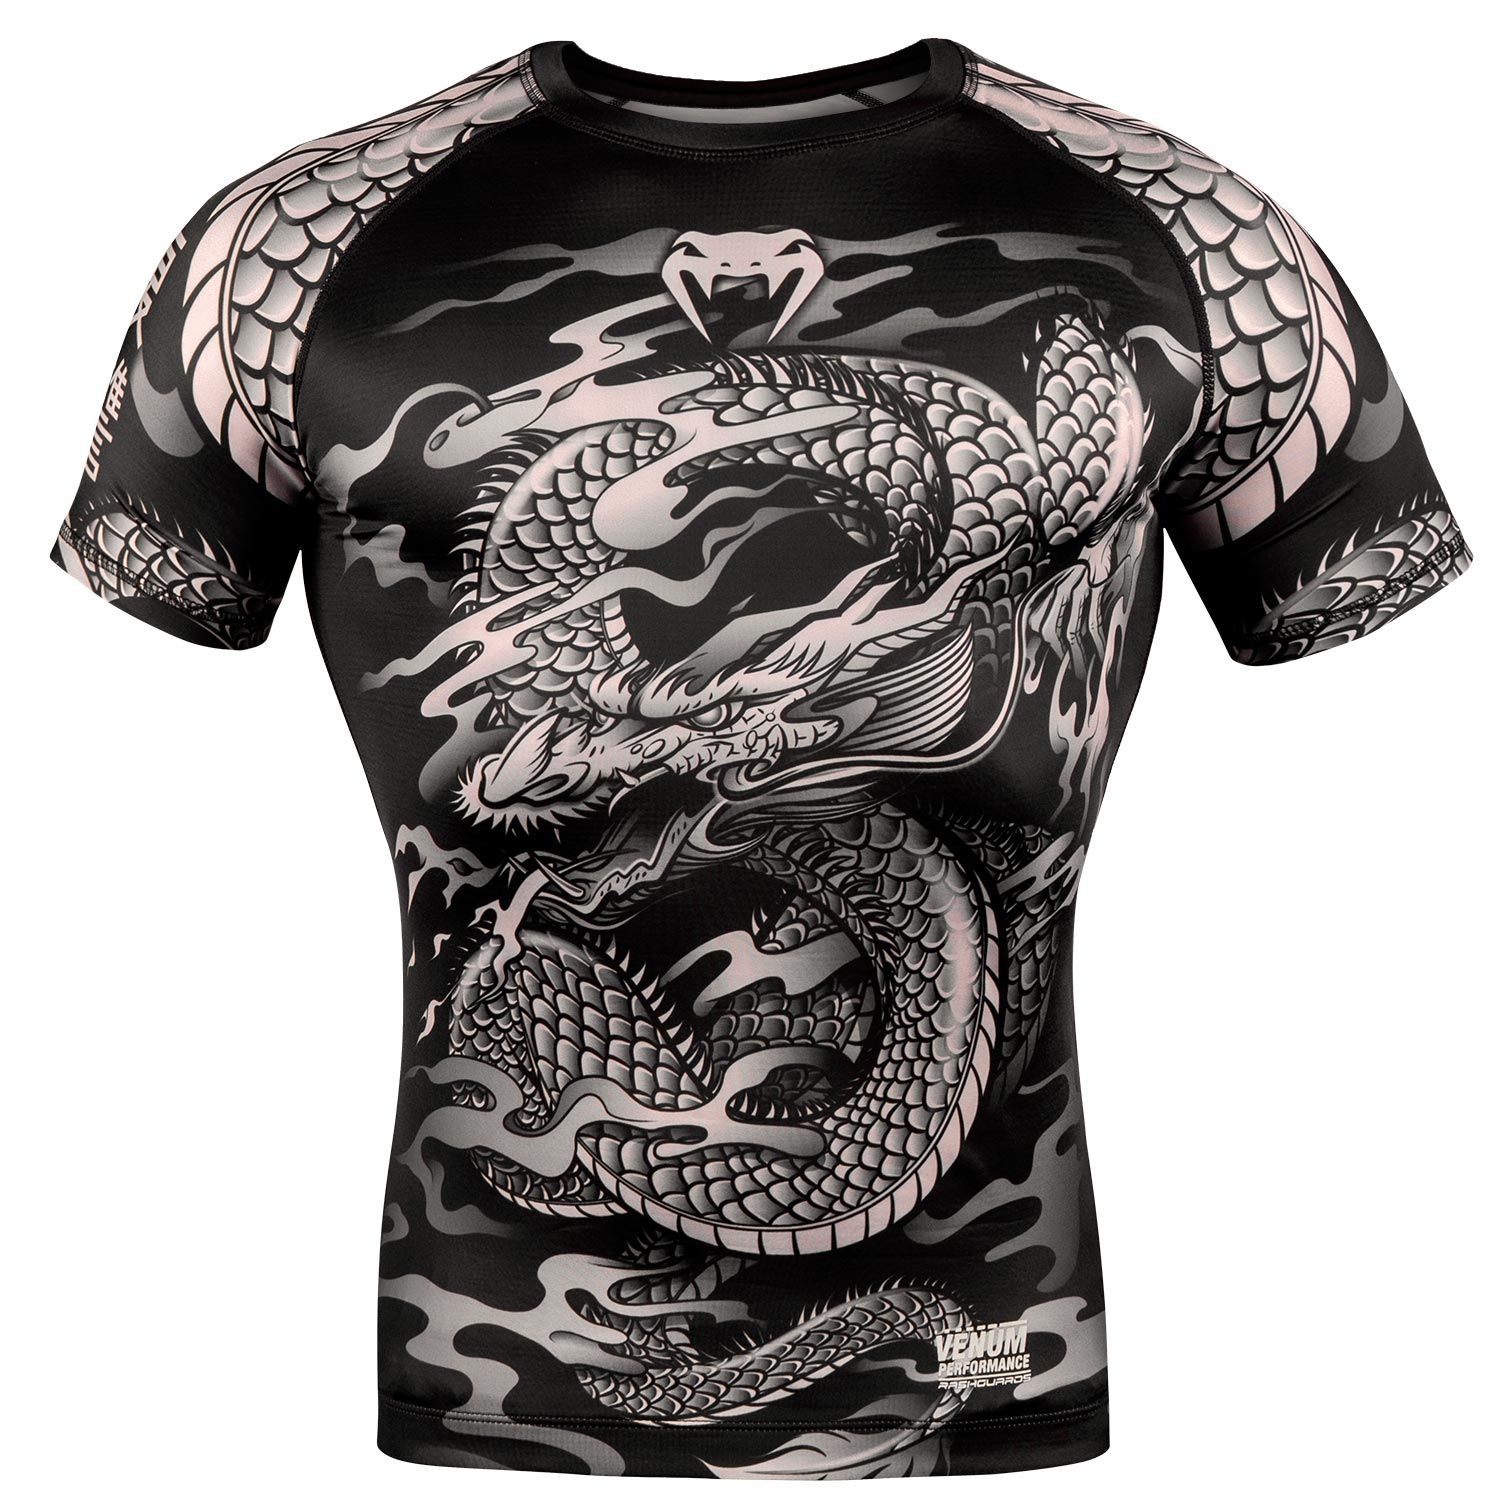 Venum Dragon's Flight Rashguard - Short Sleeves - Black/Sand